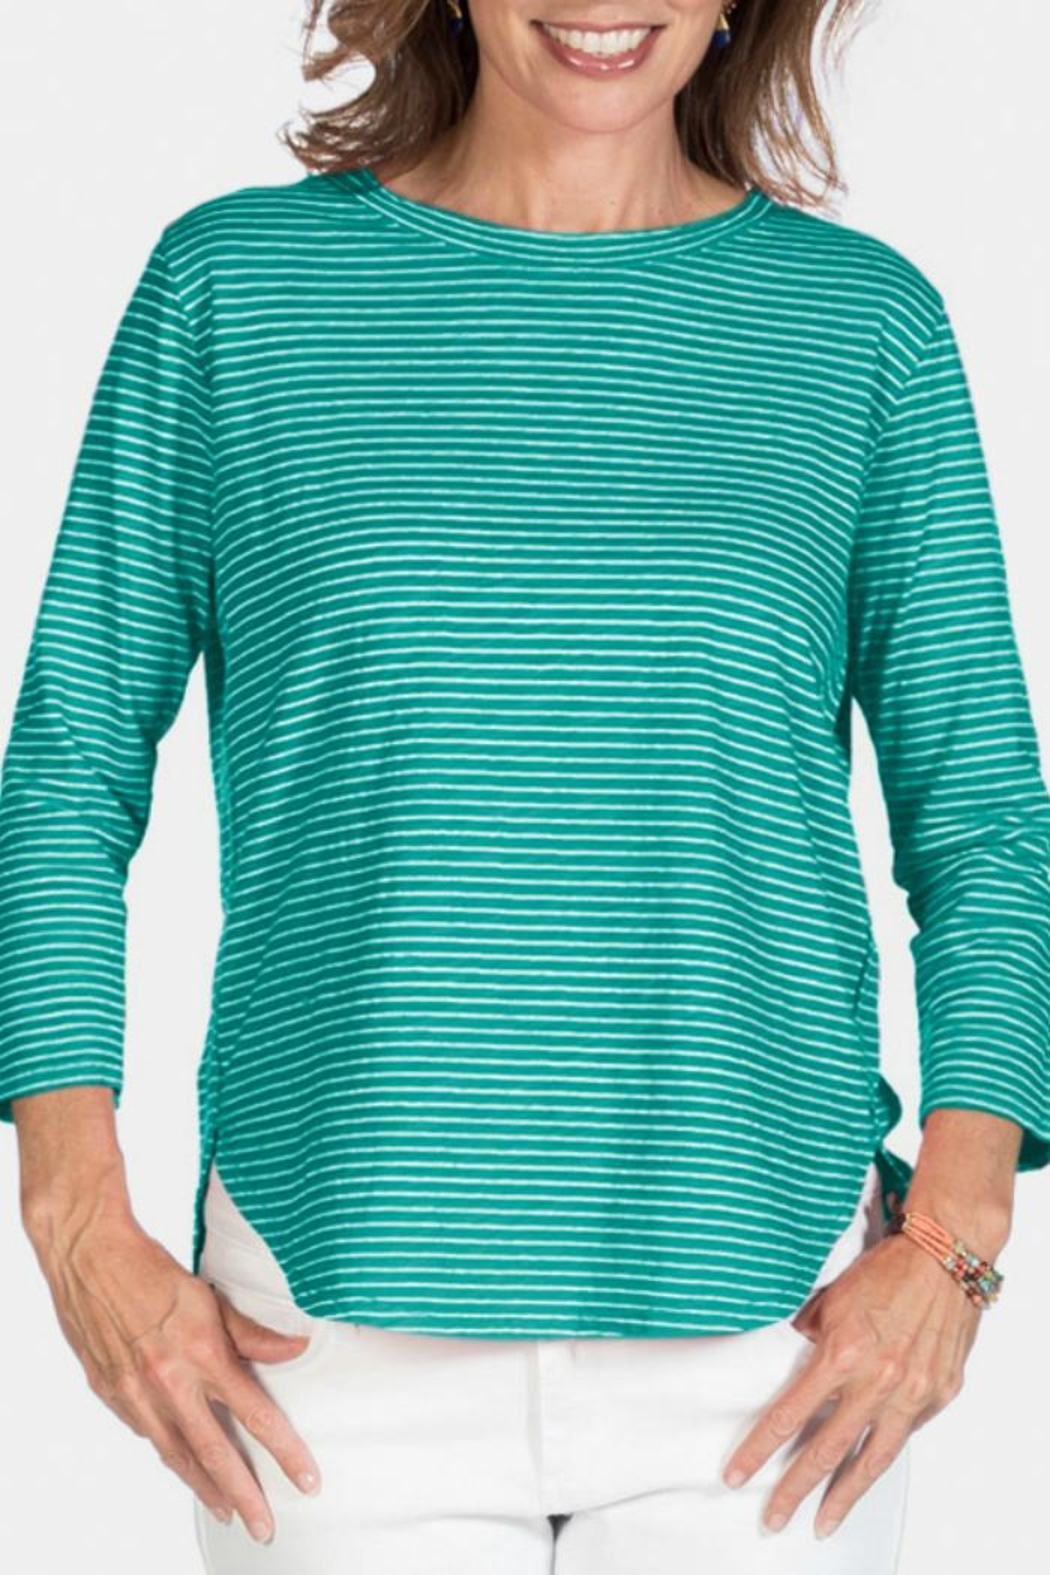 Fresh Produce Pinstripe Cotton Top - Main Image